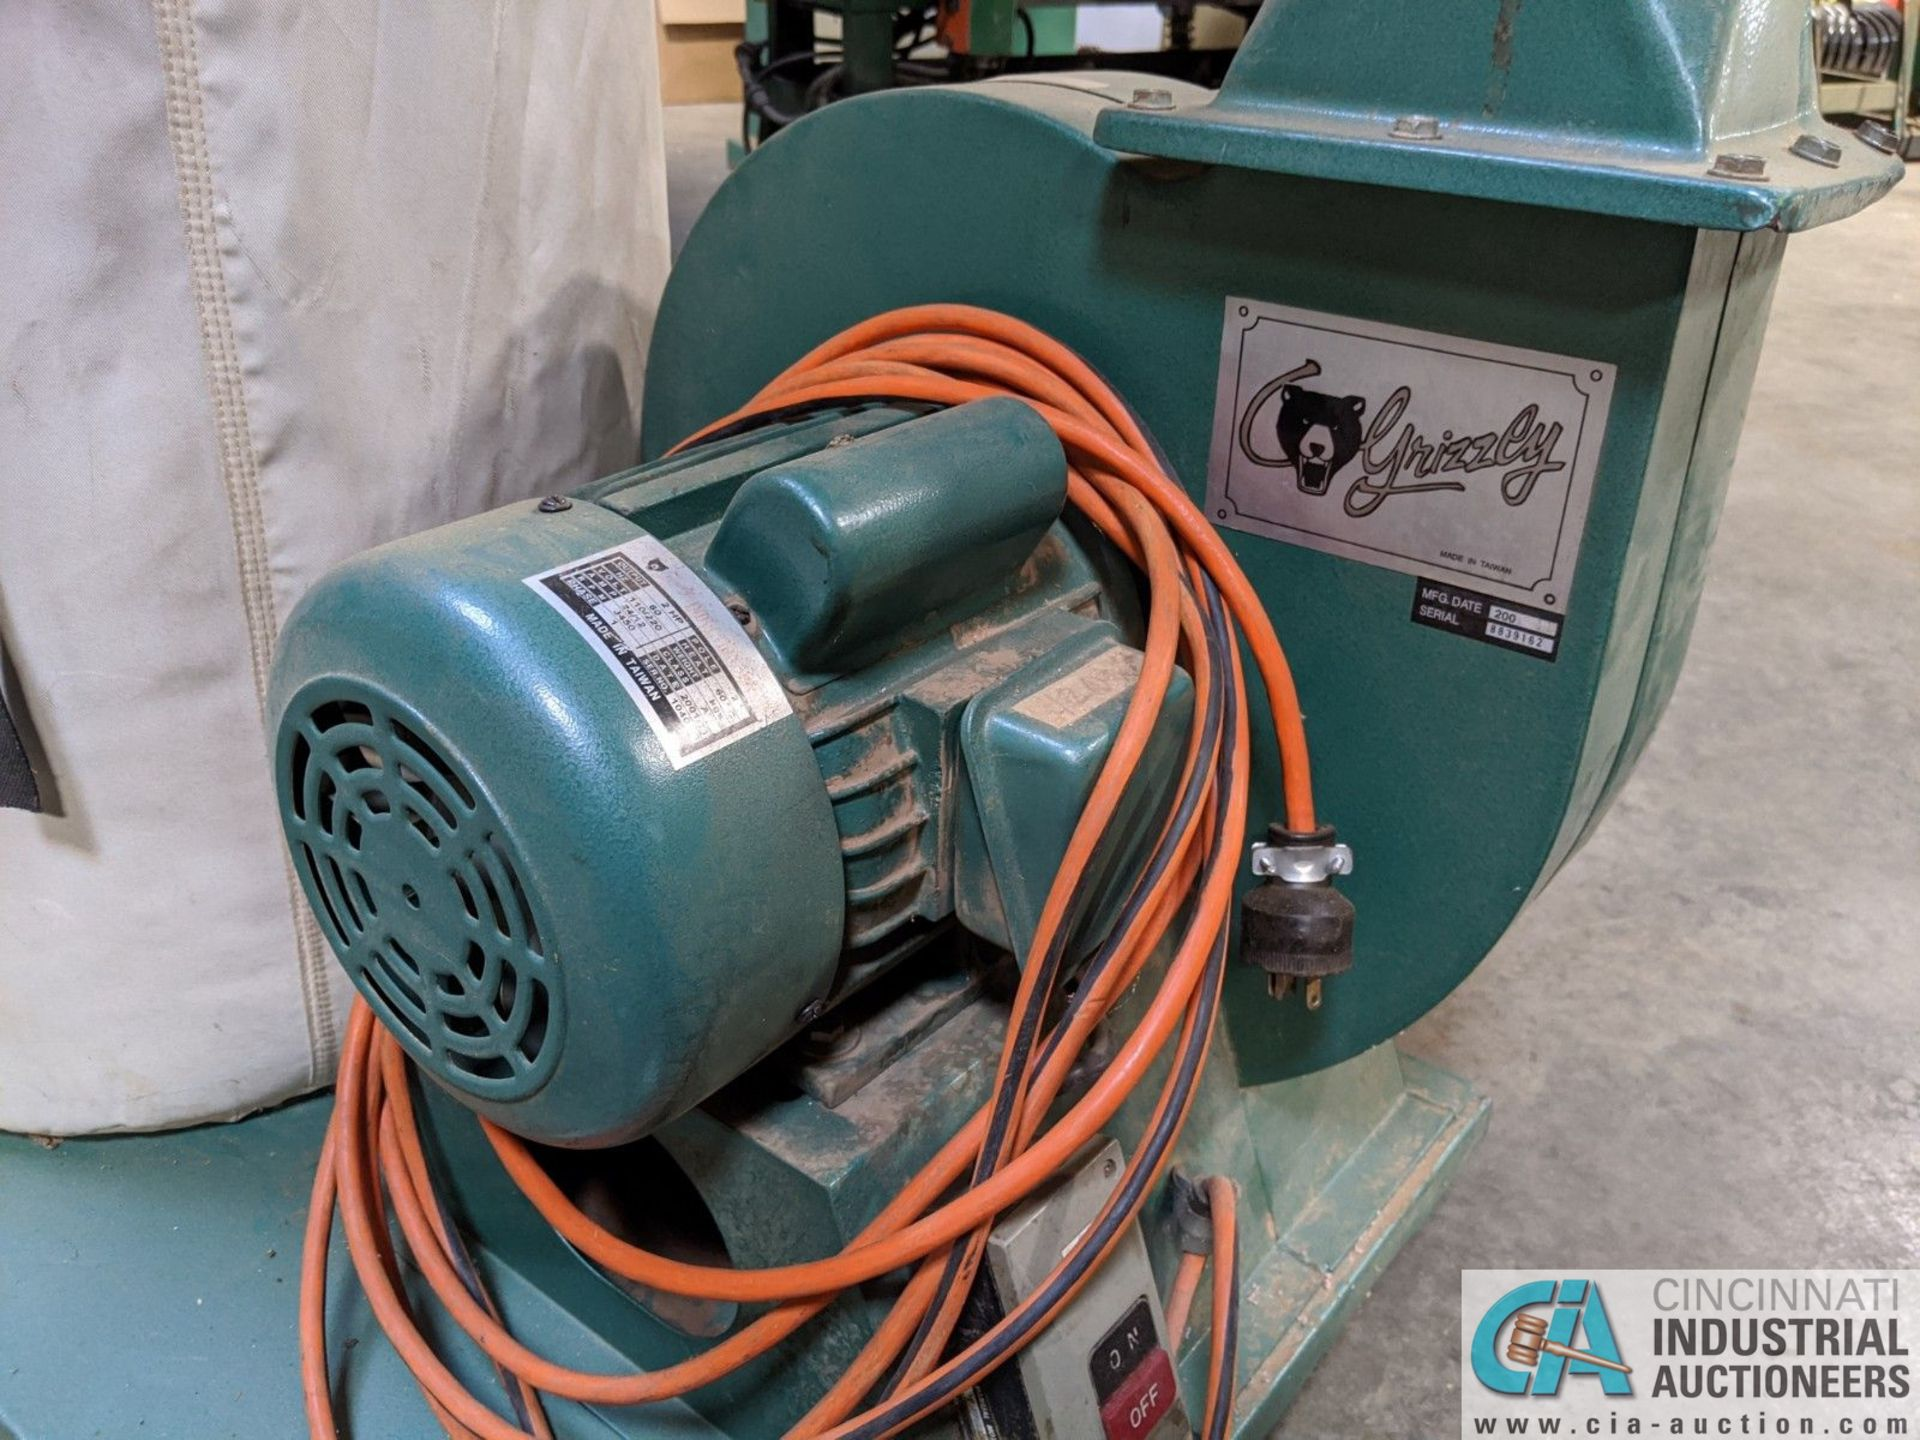 2-HP GRIZZLY PORTABLE DUST COLLECTOR (8635 East Ave., Mentor, OH 44060 - John Magnasum: 440-667- - Image 4 of 5